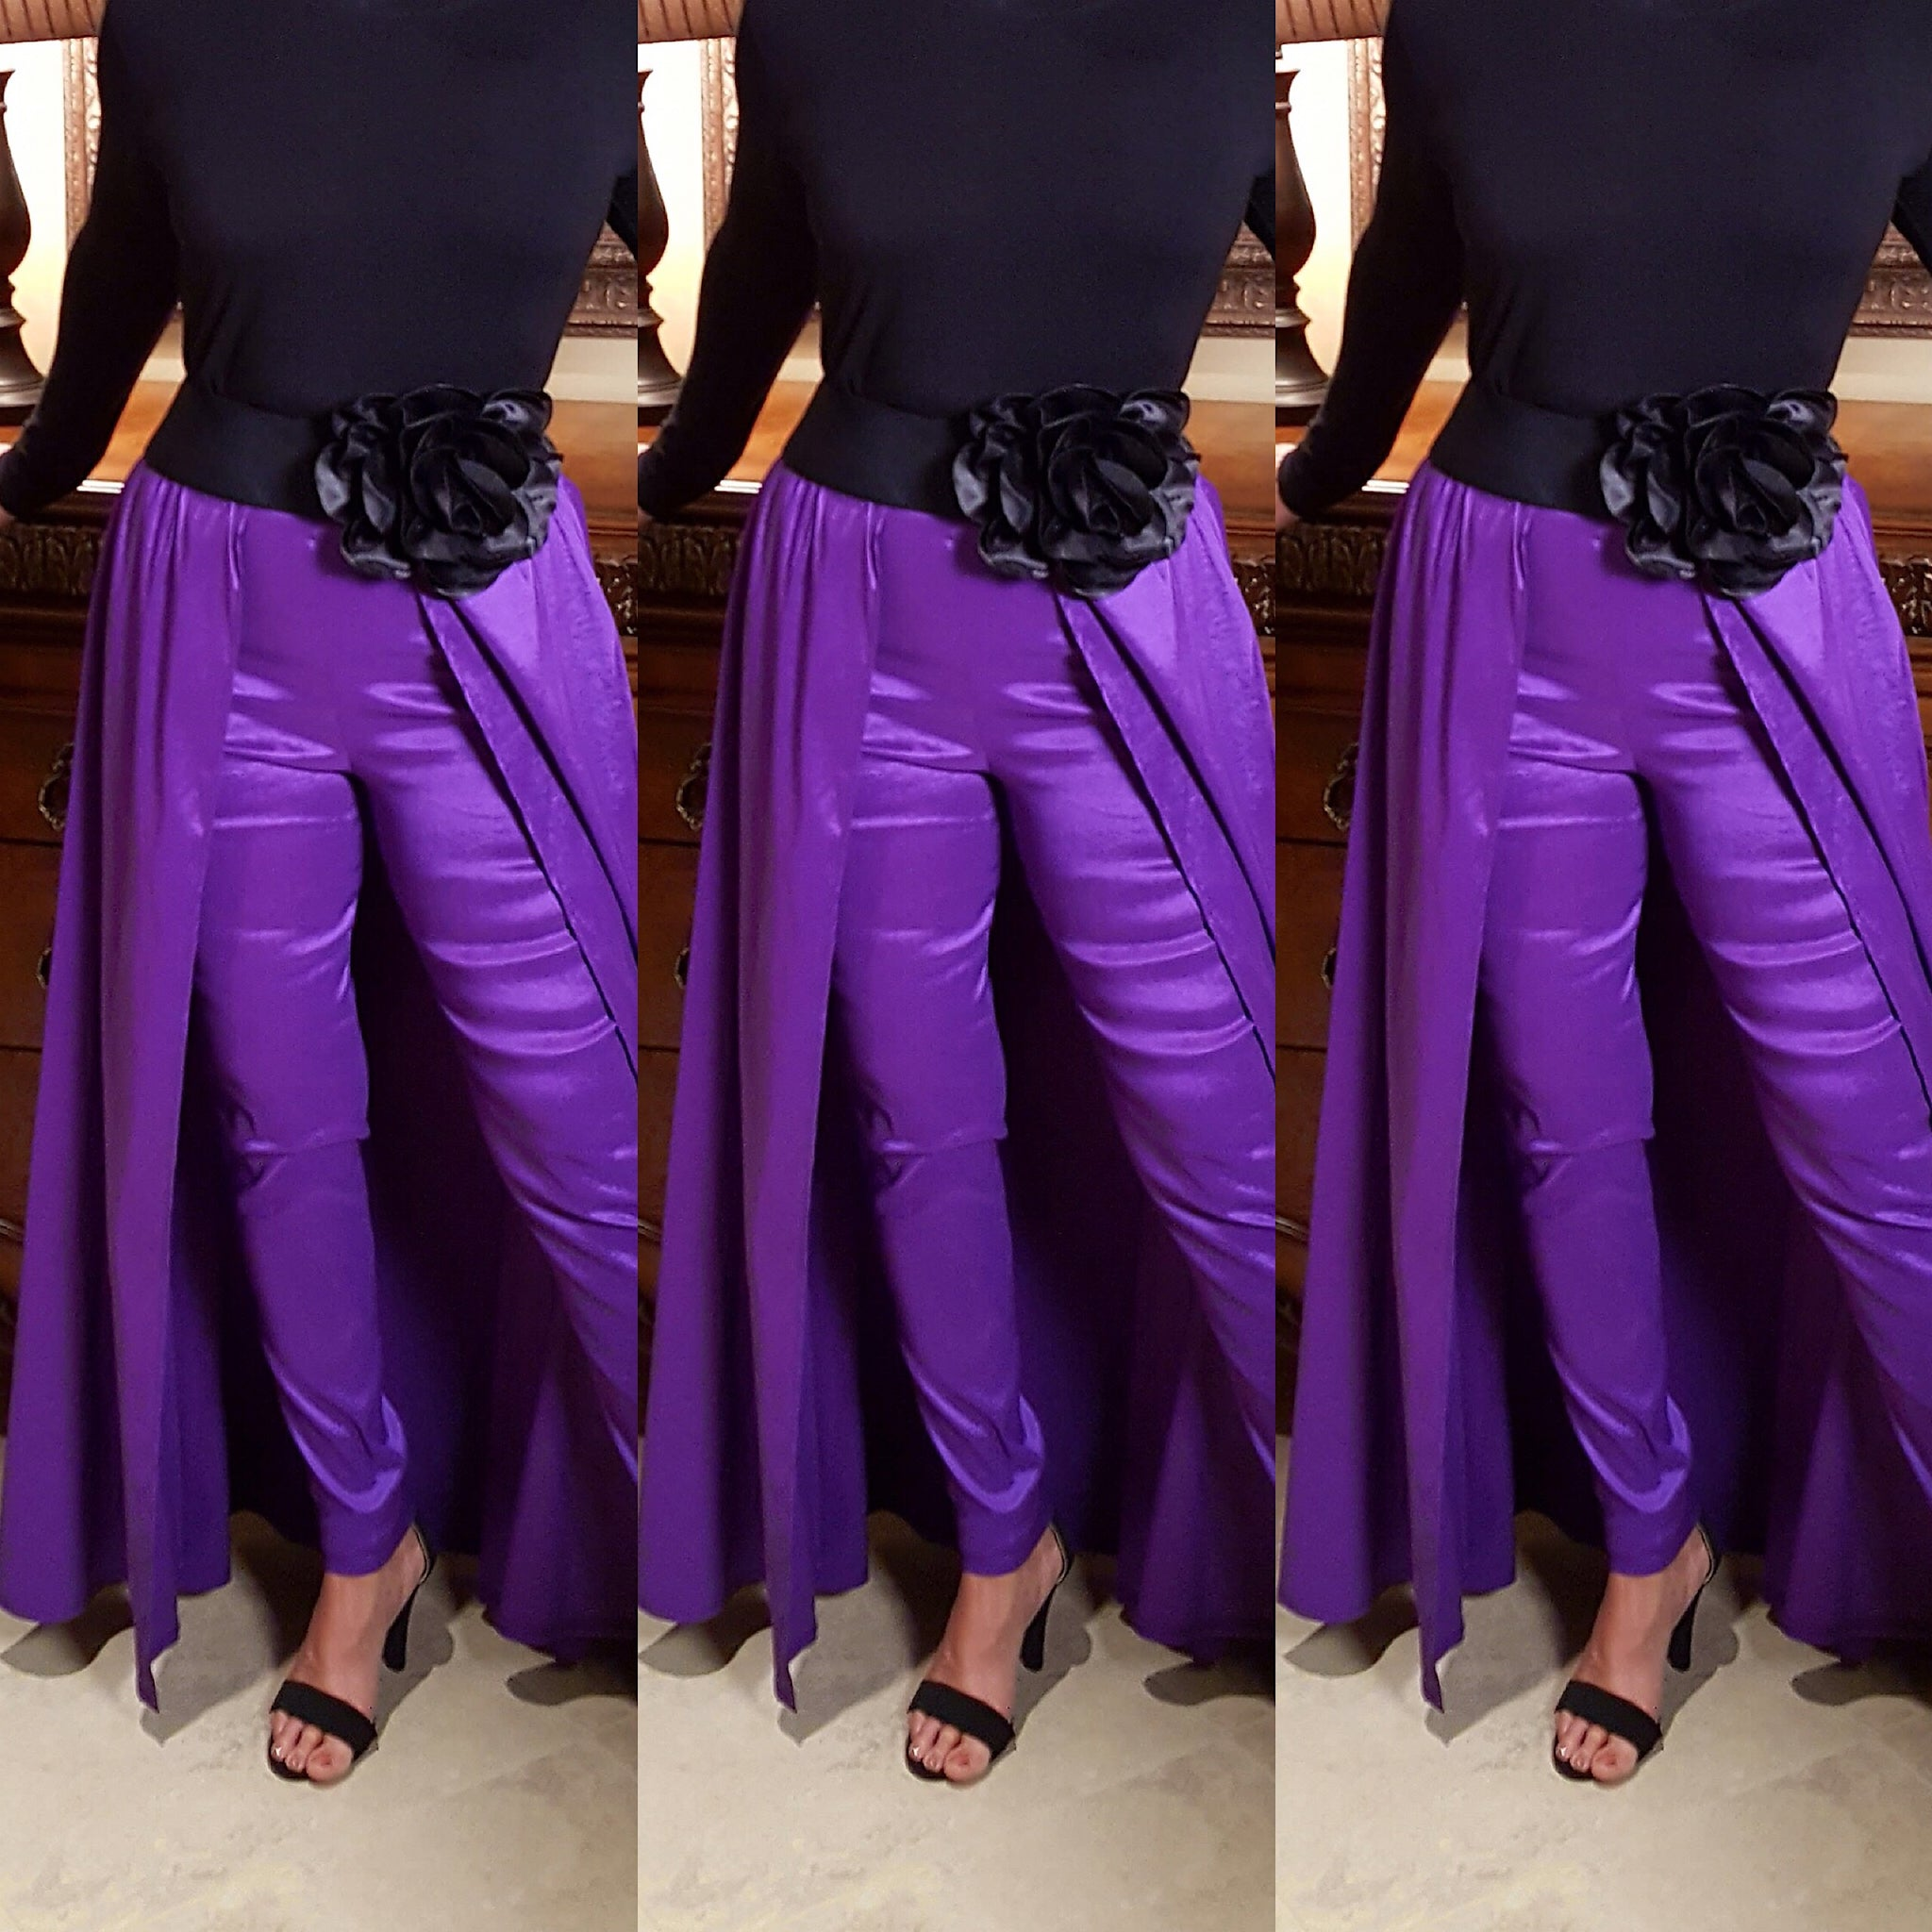 Purple Pant Skirt Combo